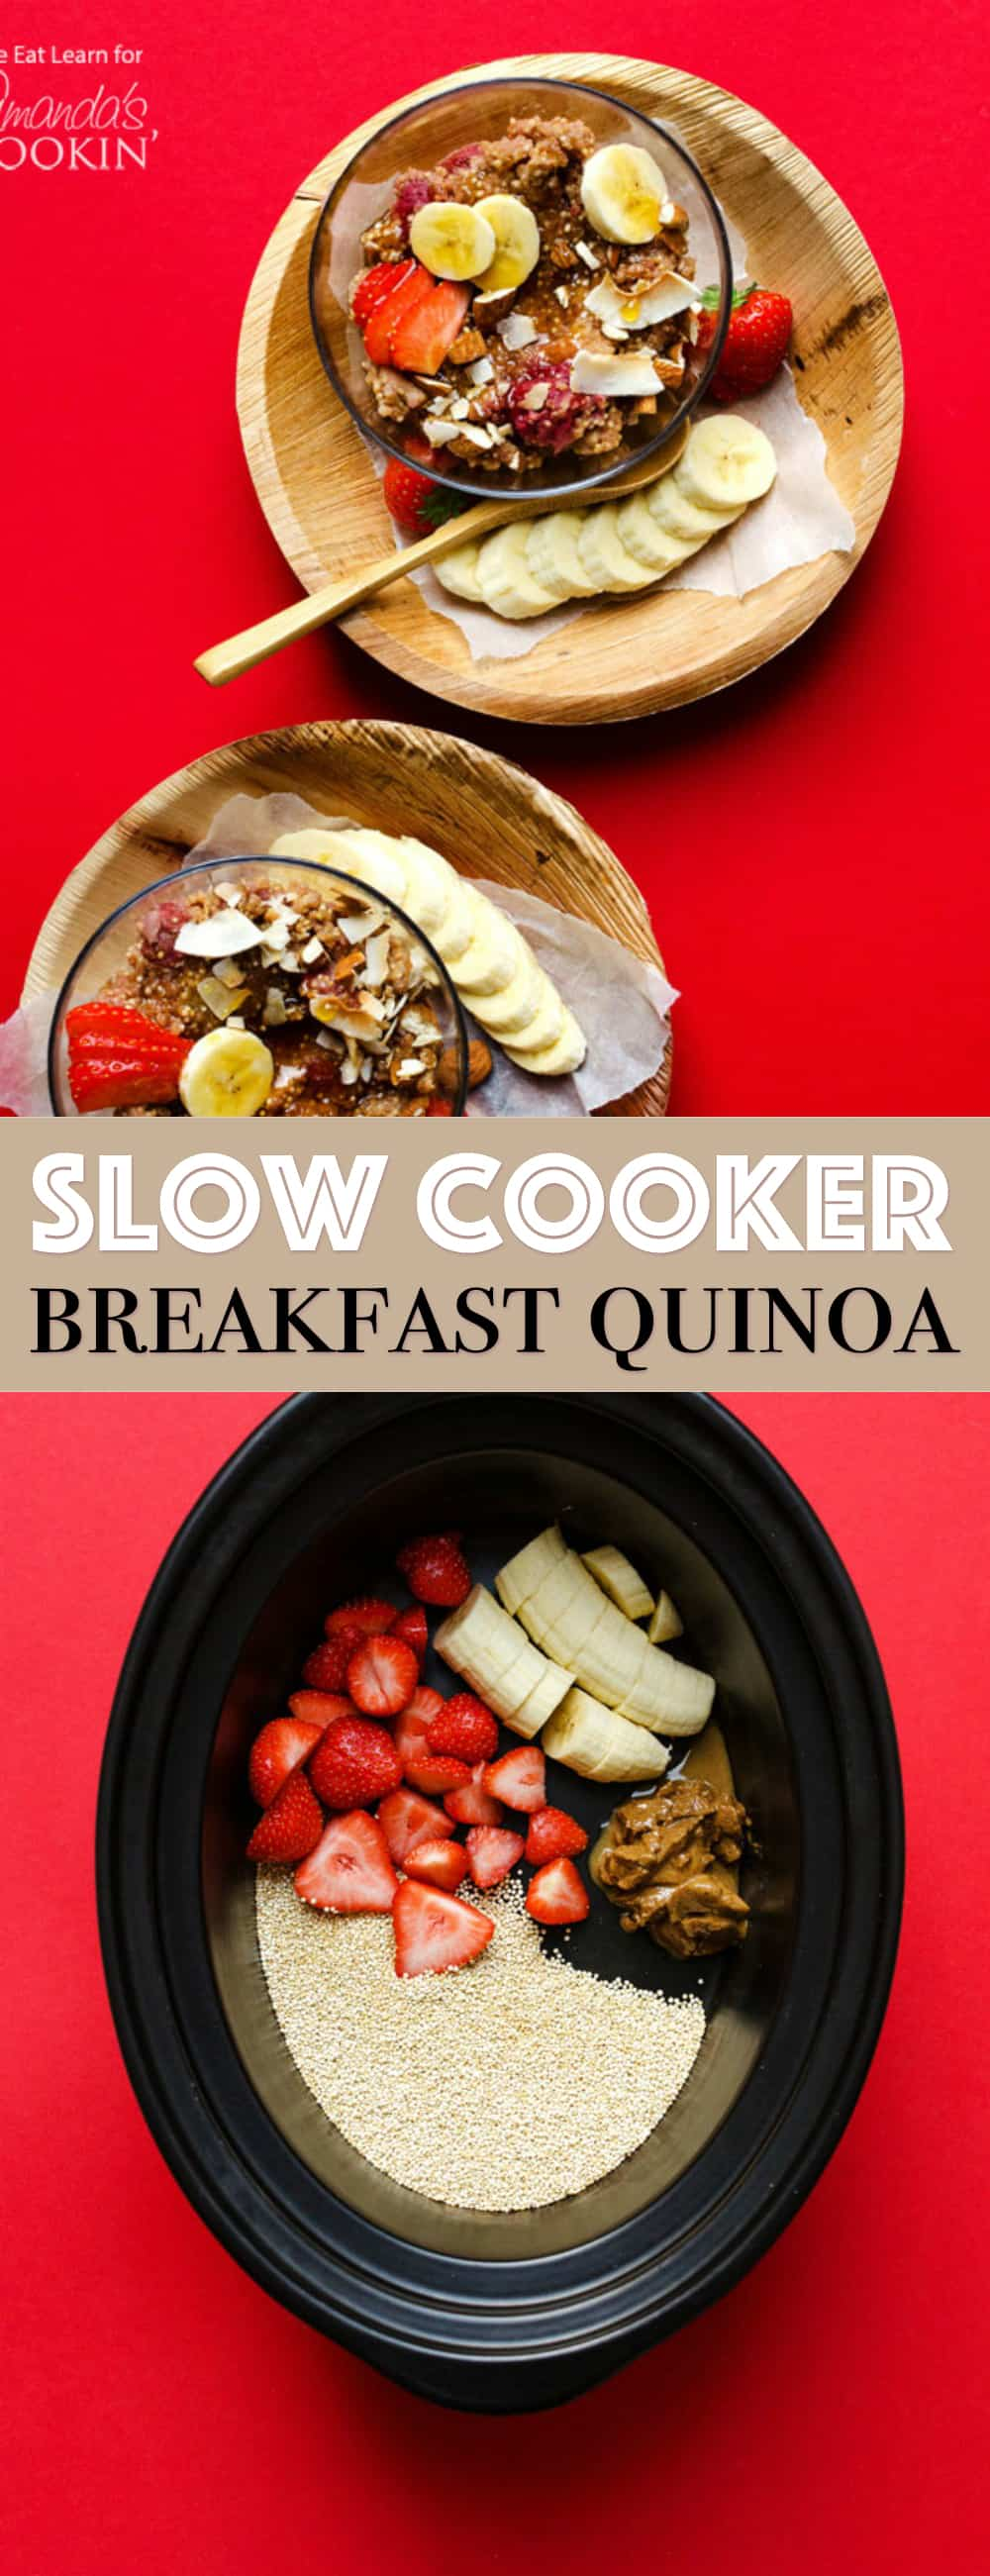 This Slow Cooker Breakfast Quinoa is a dump-it and forget-it kind of meal. Throw all the makings of a delicious breakfast in your slow cooker, let it cook overnight, and in the morning...breakfast is served!